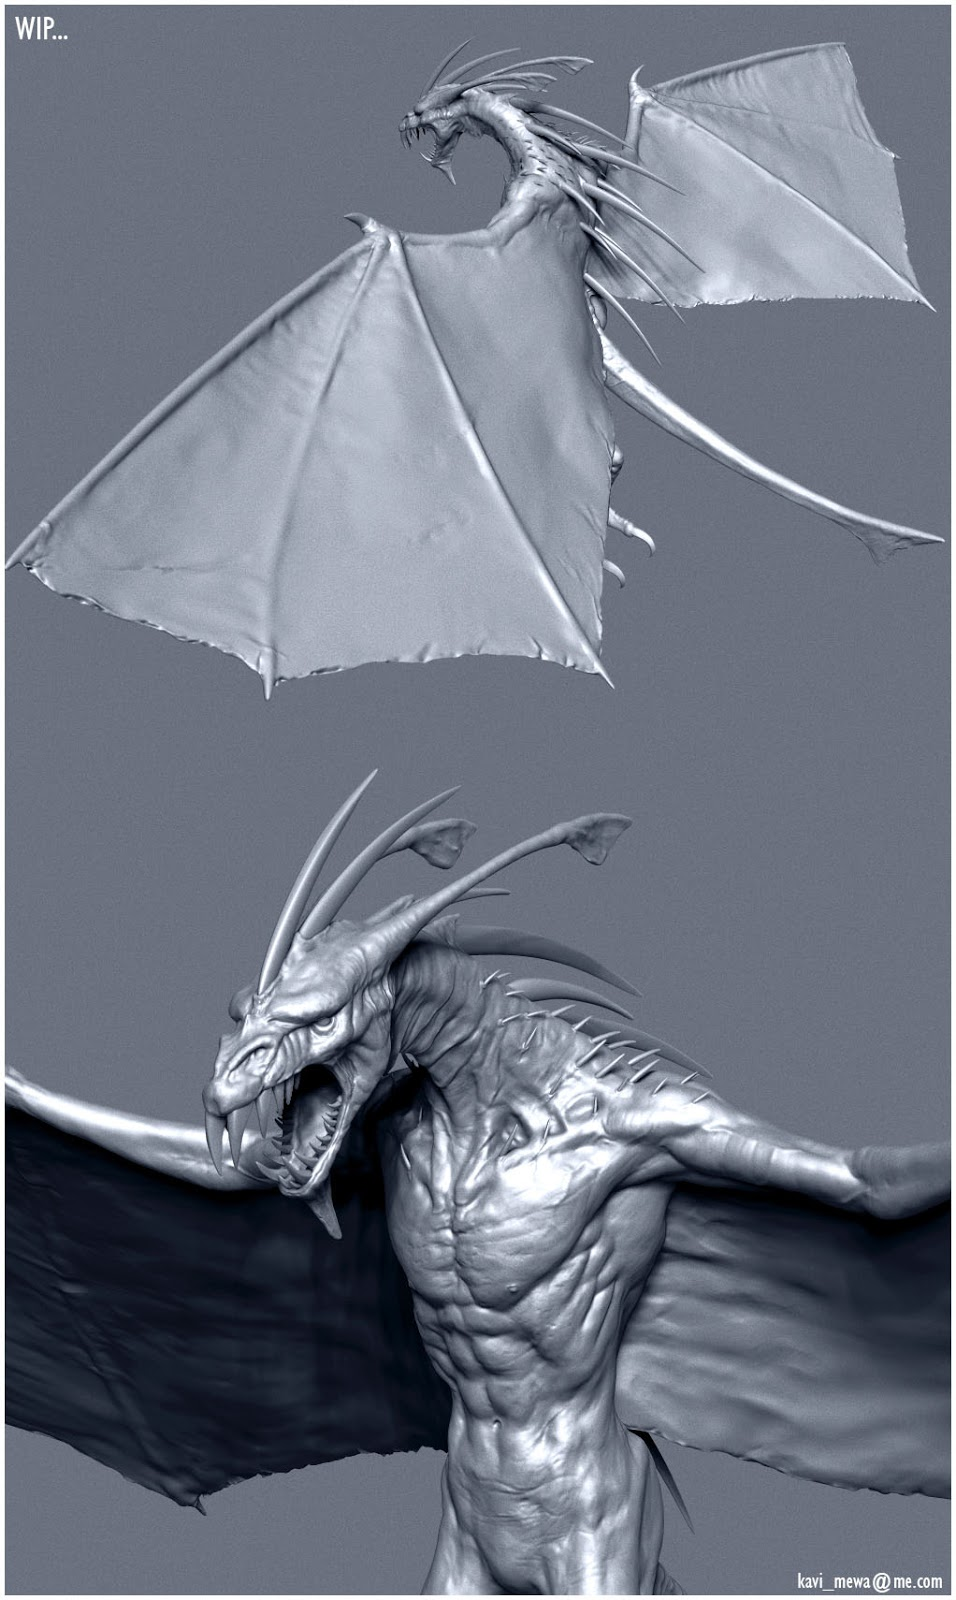 FlyingCreatureWIP03.jpg